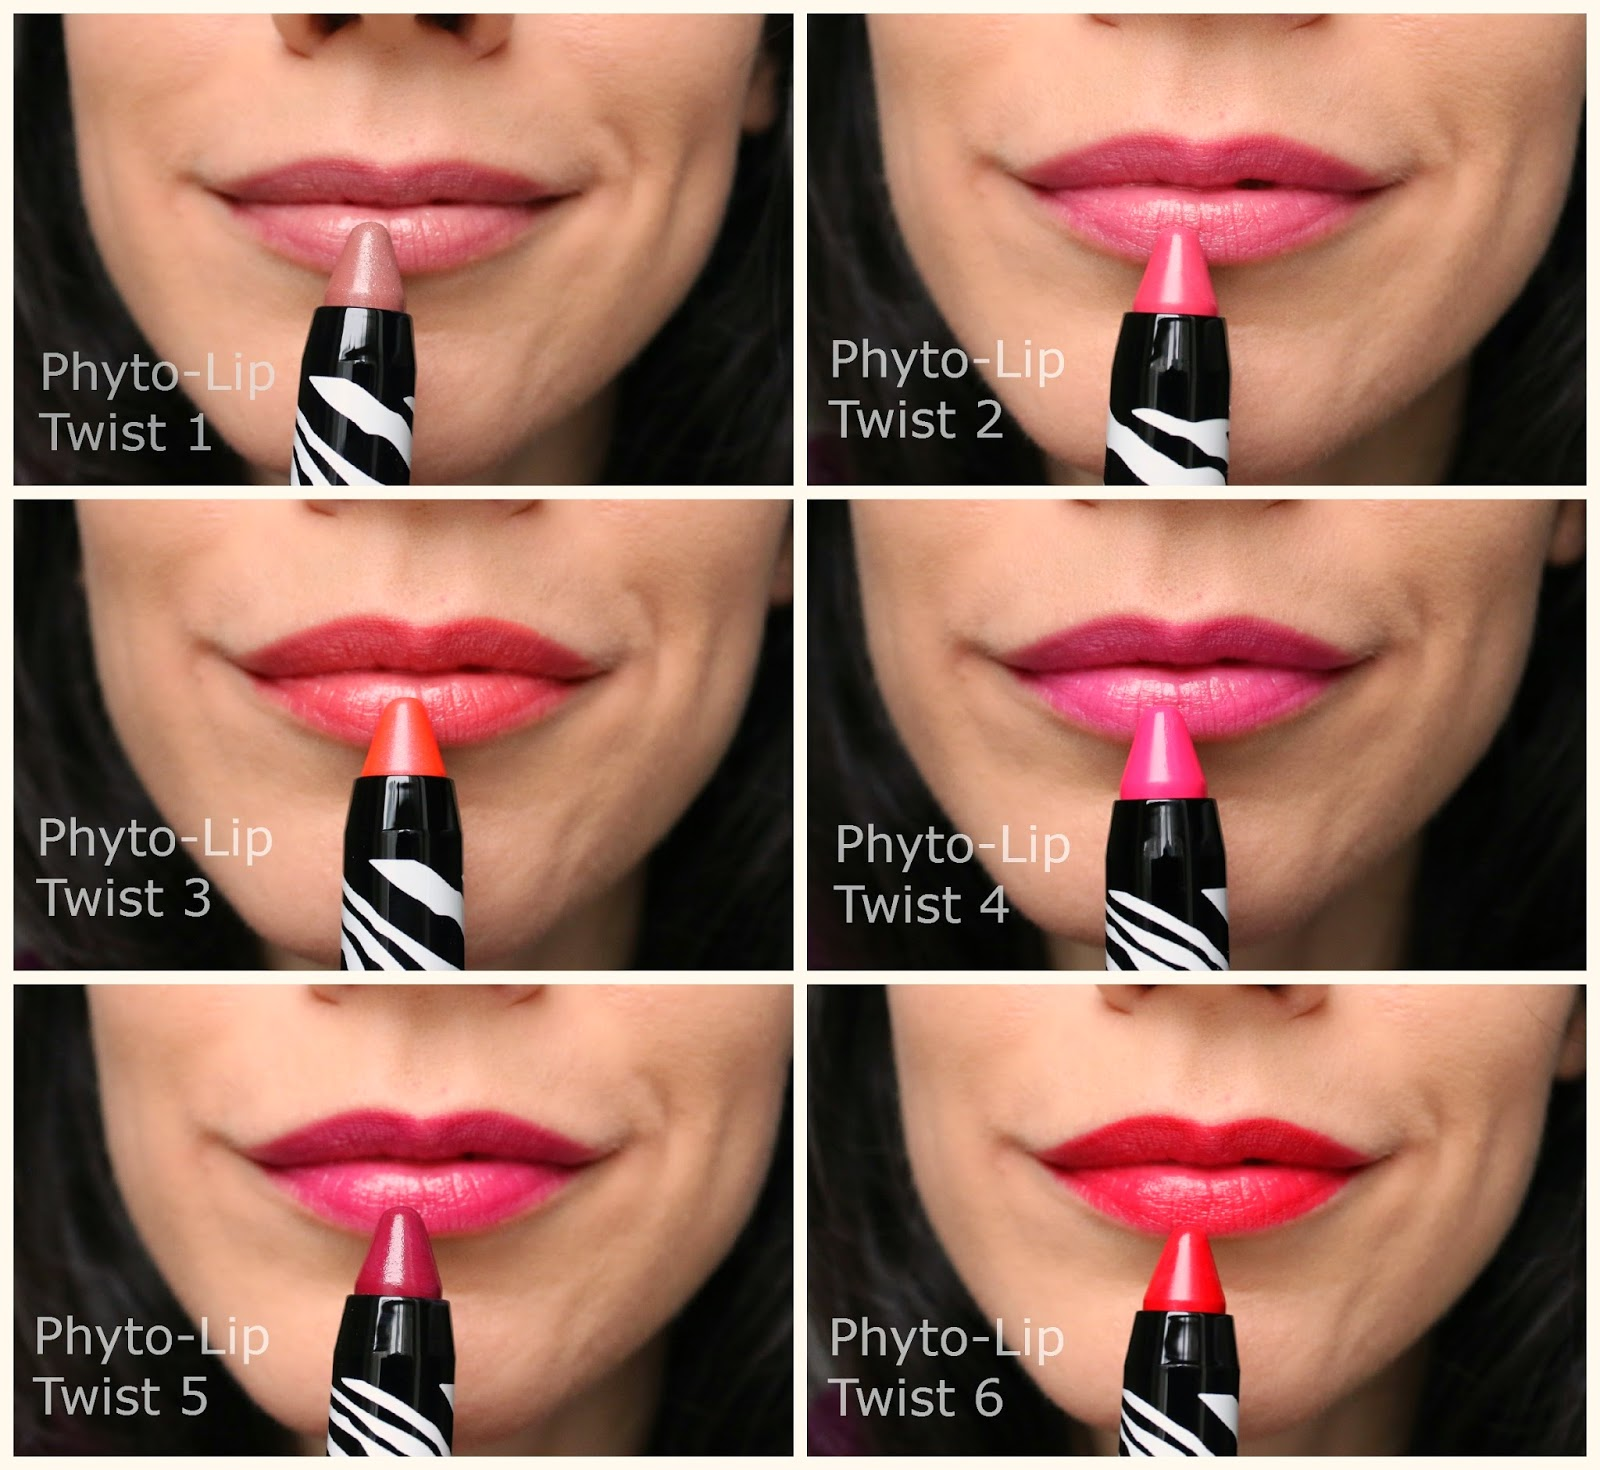 Sisley Phyto-Lip Twist swatches